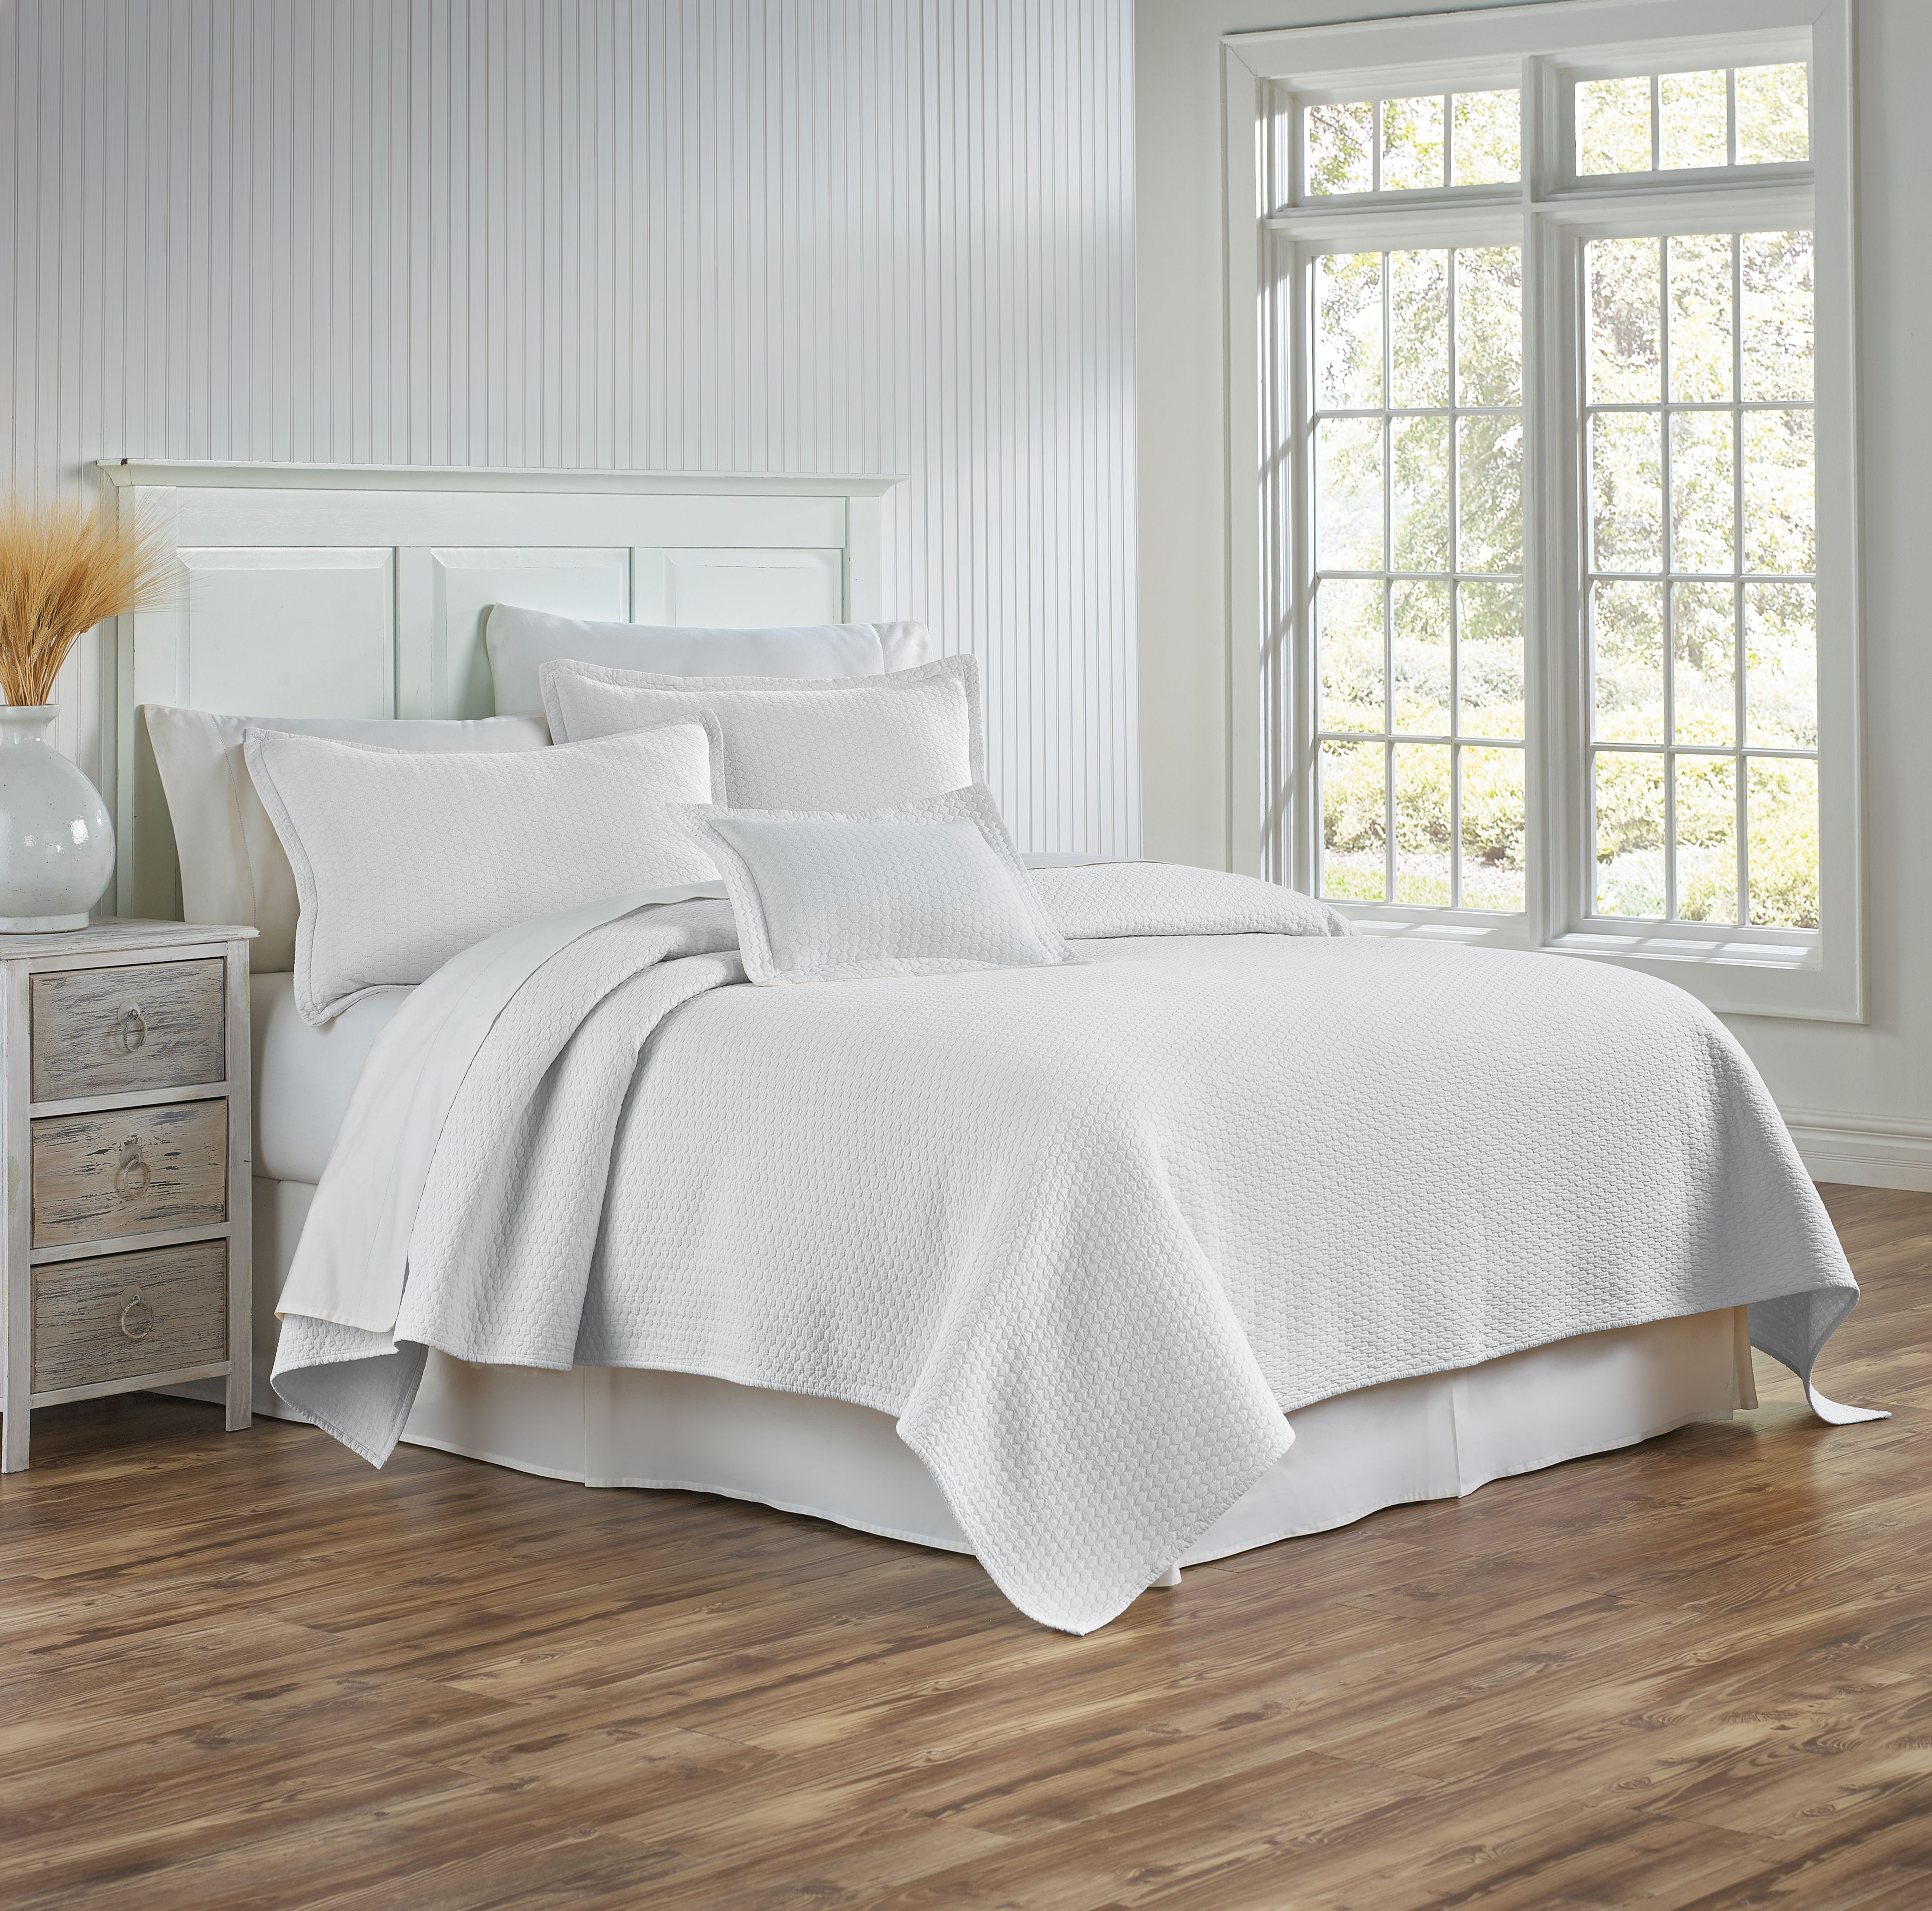 Tracey Coverlet Tl At Home By Shari Kline